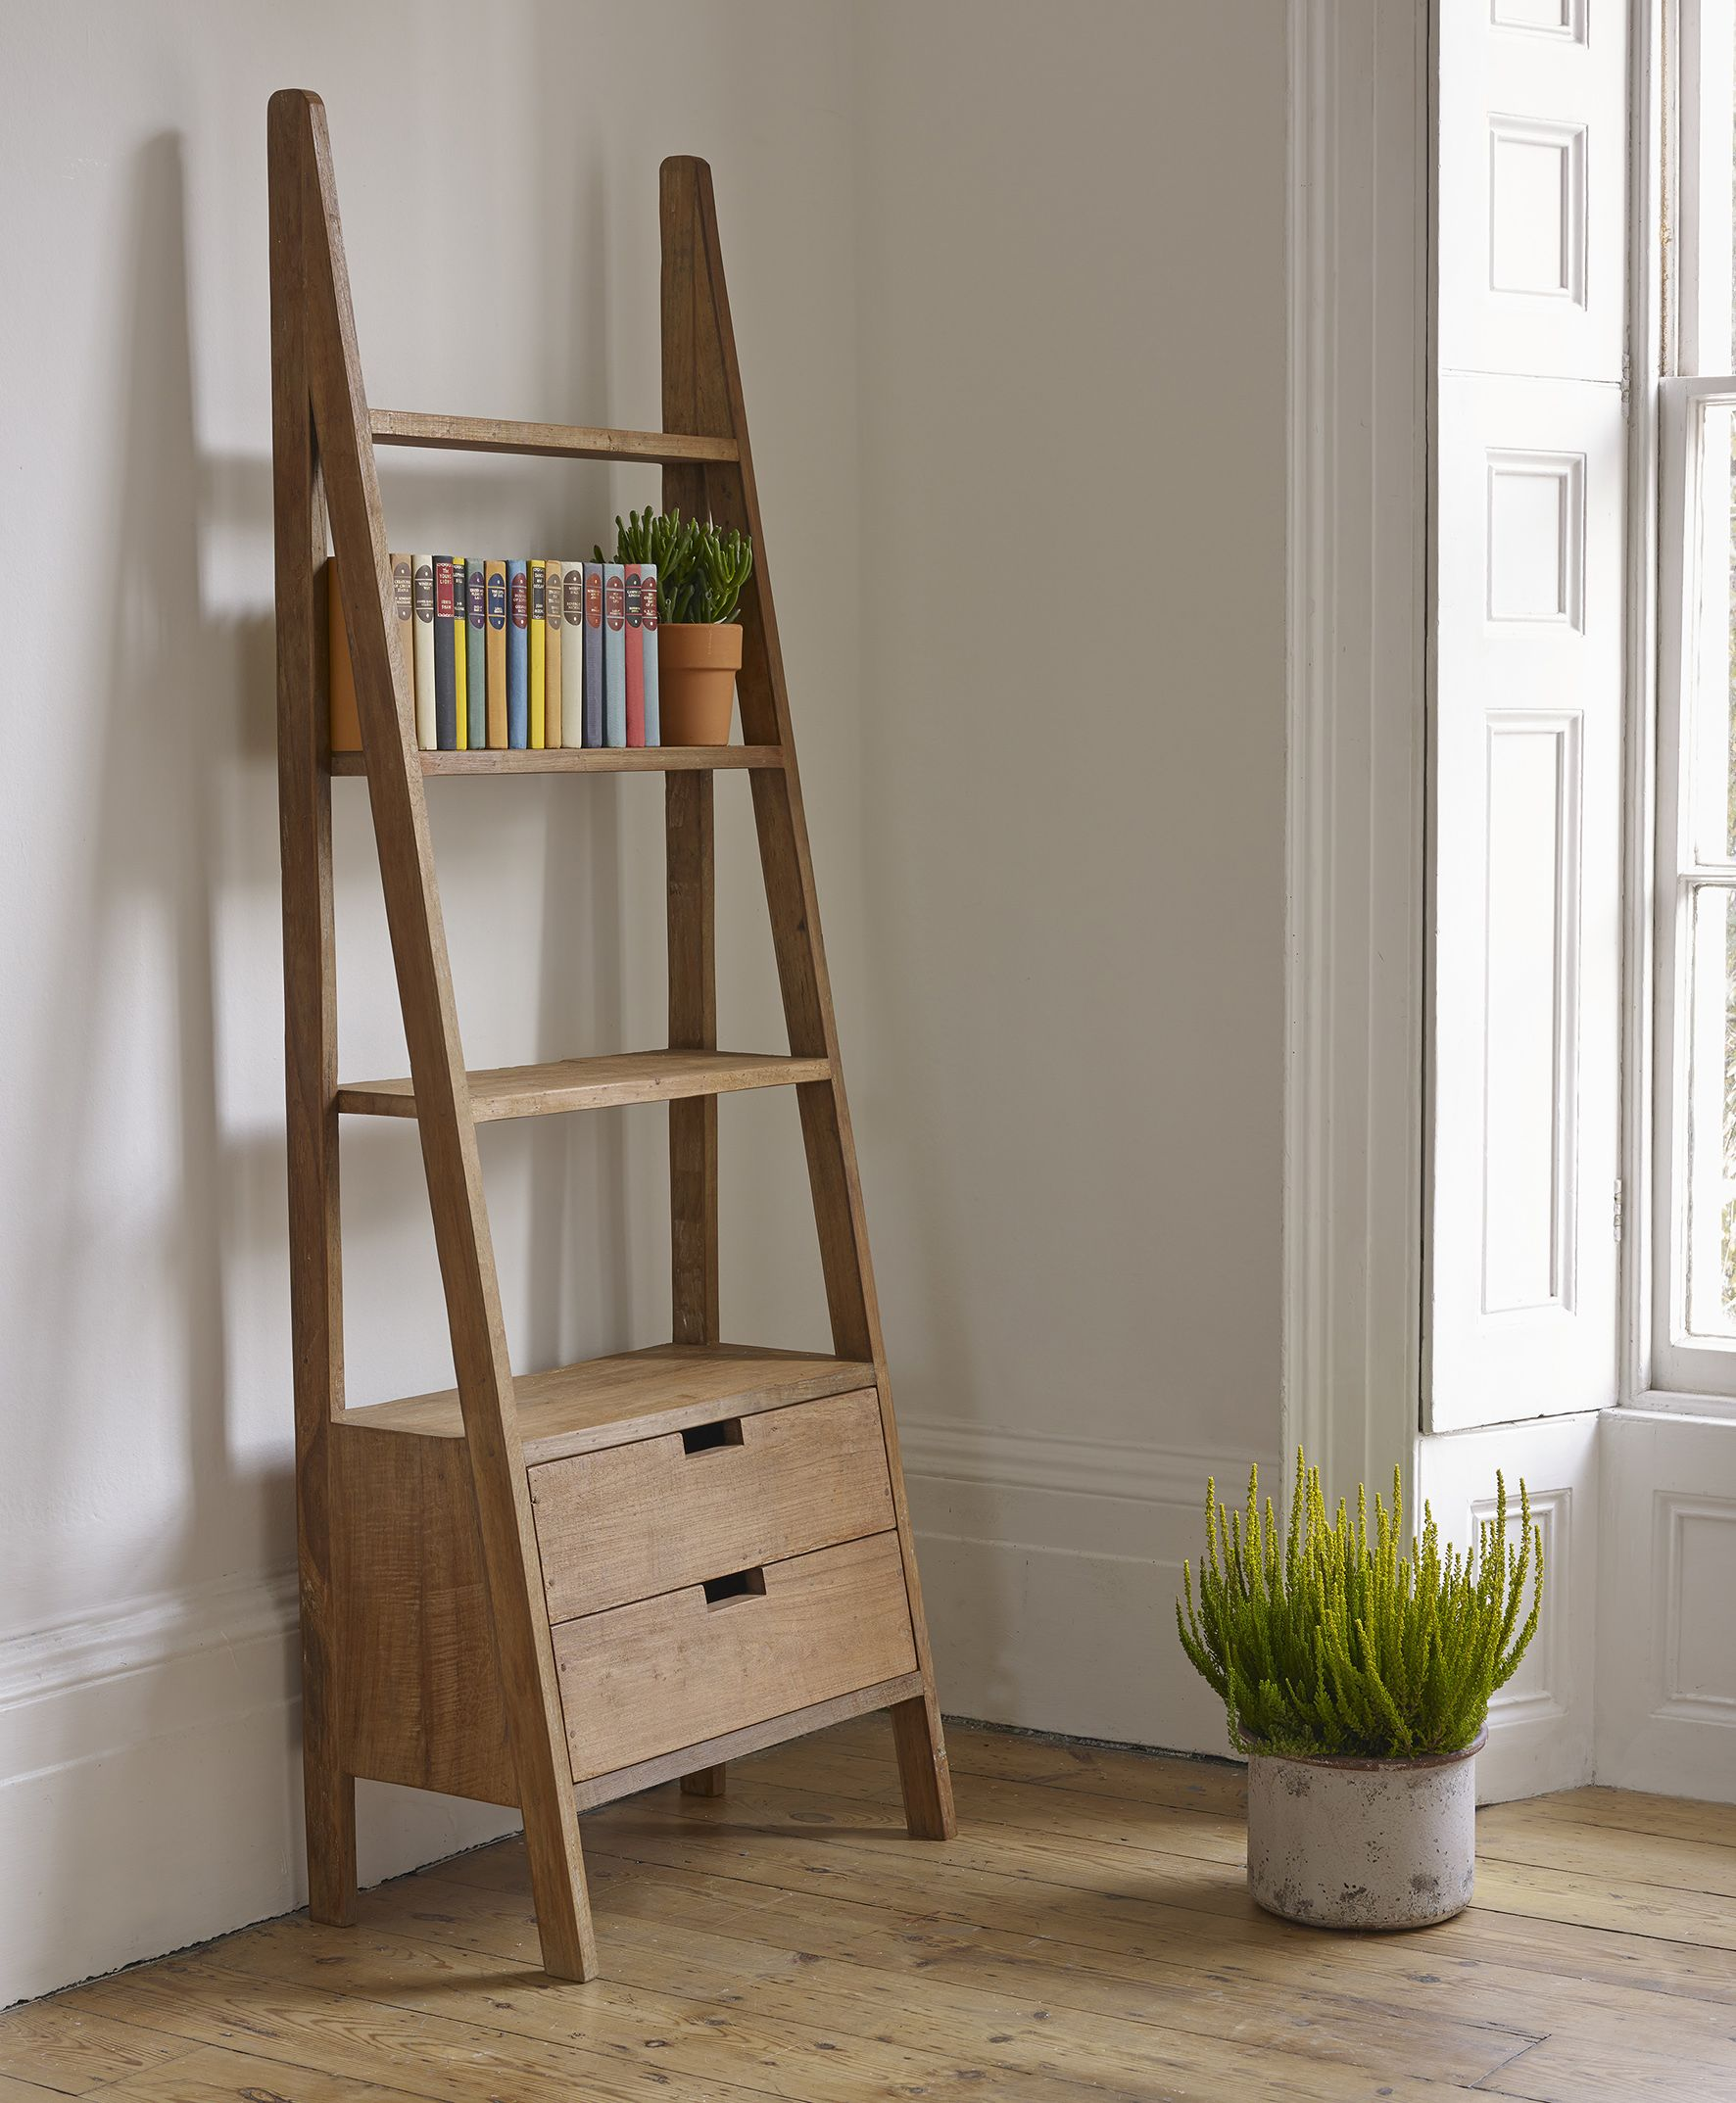 Our Sumatra Bookcase Ladders Are Handmade In Indonesia From Solid